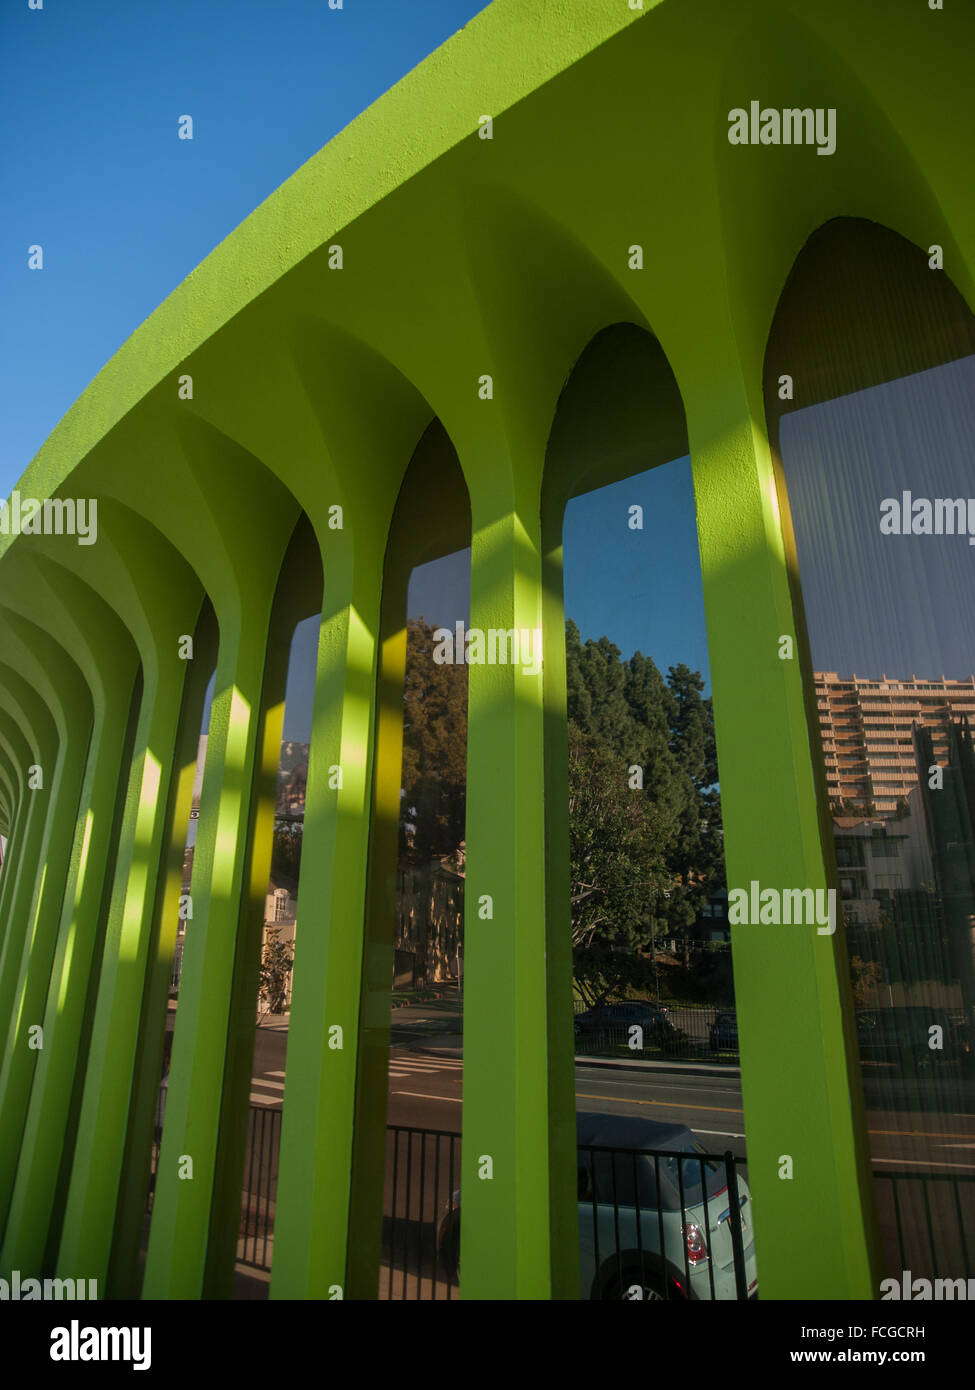 Abstract of round lime green building in Hollywood, Los Angeles, California, USA. - Stock Image